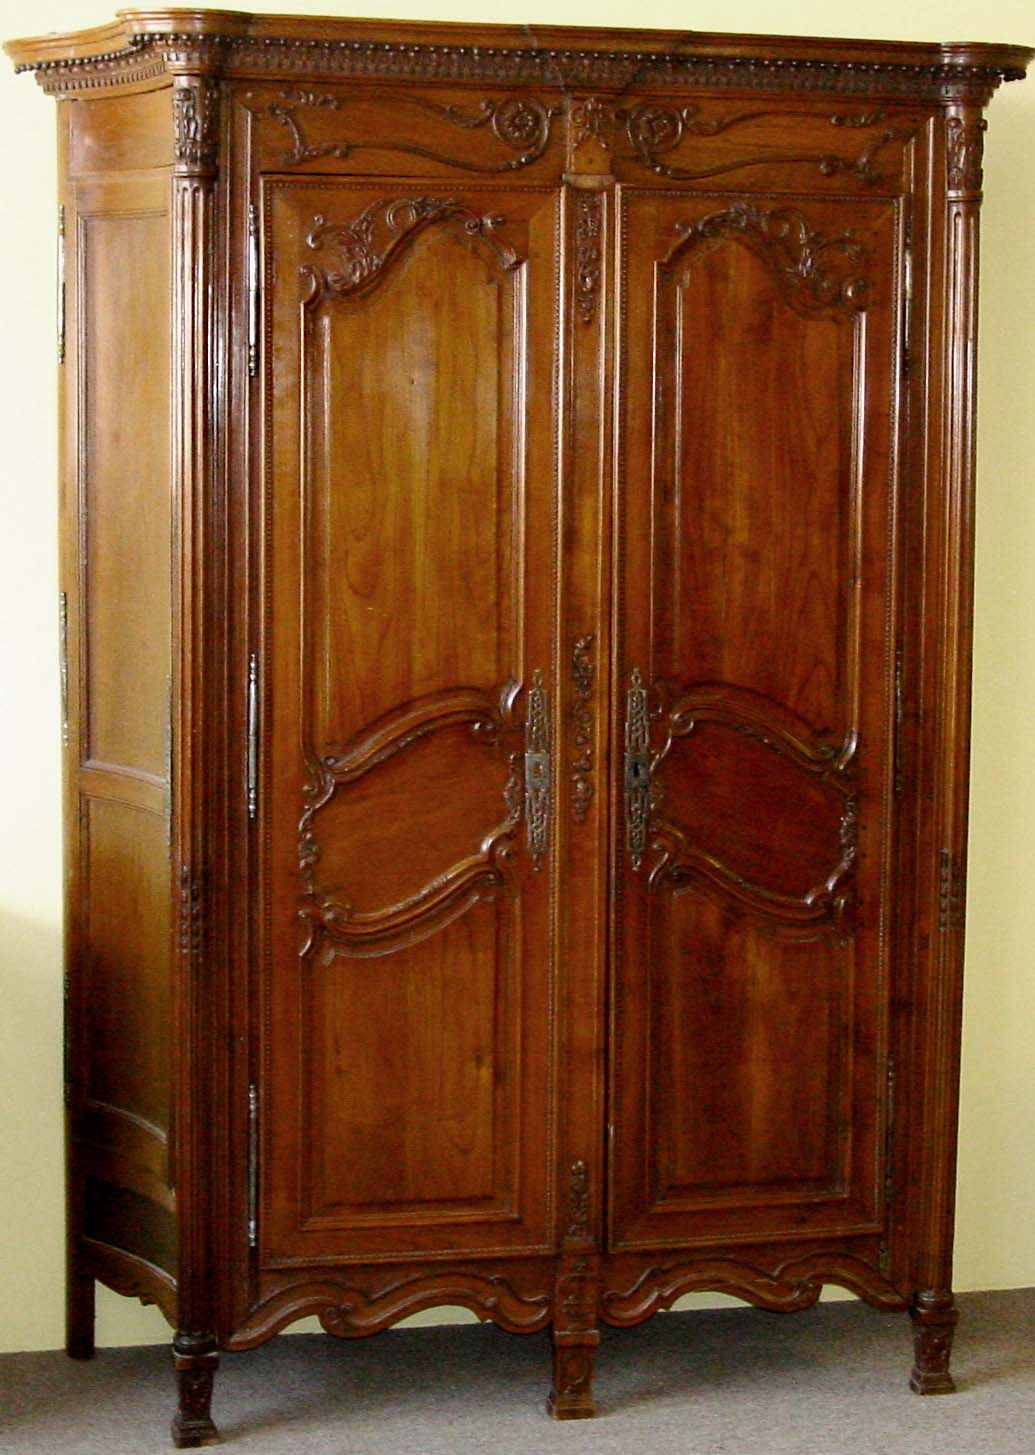 Charming French, Neoclassical, Period Armoire De Chasse